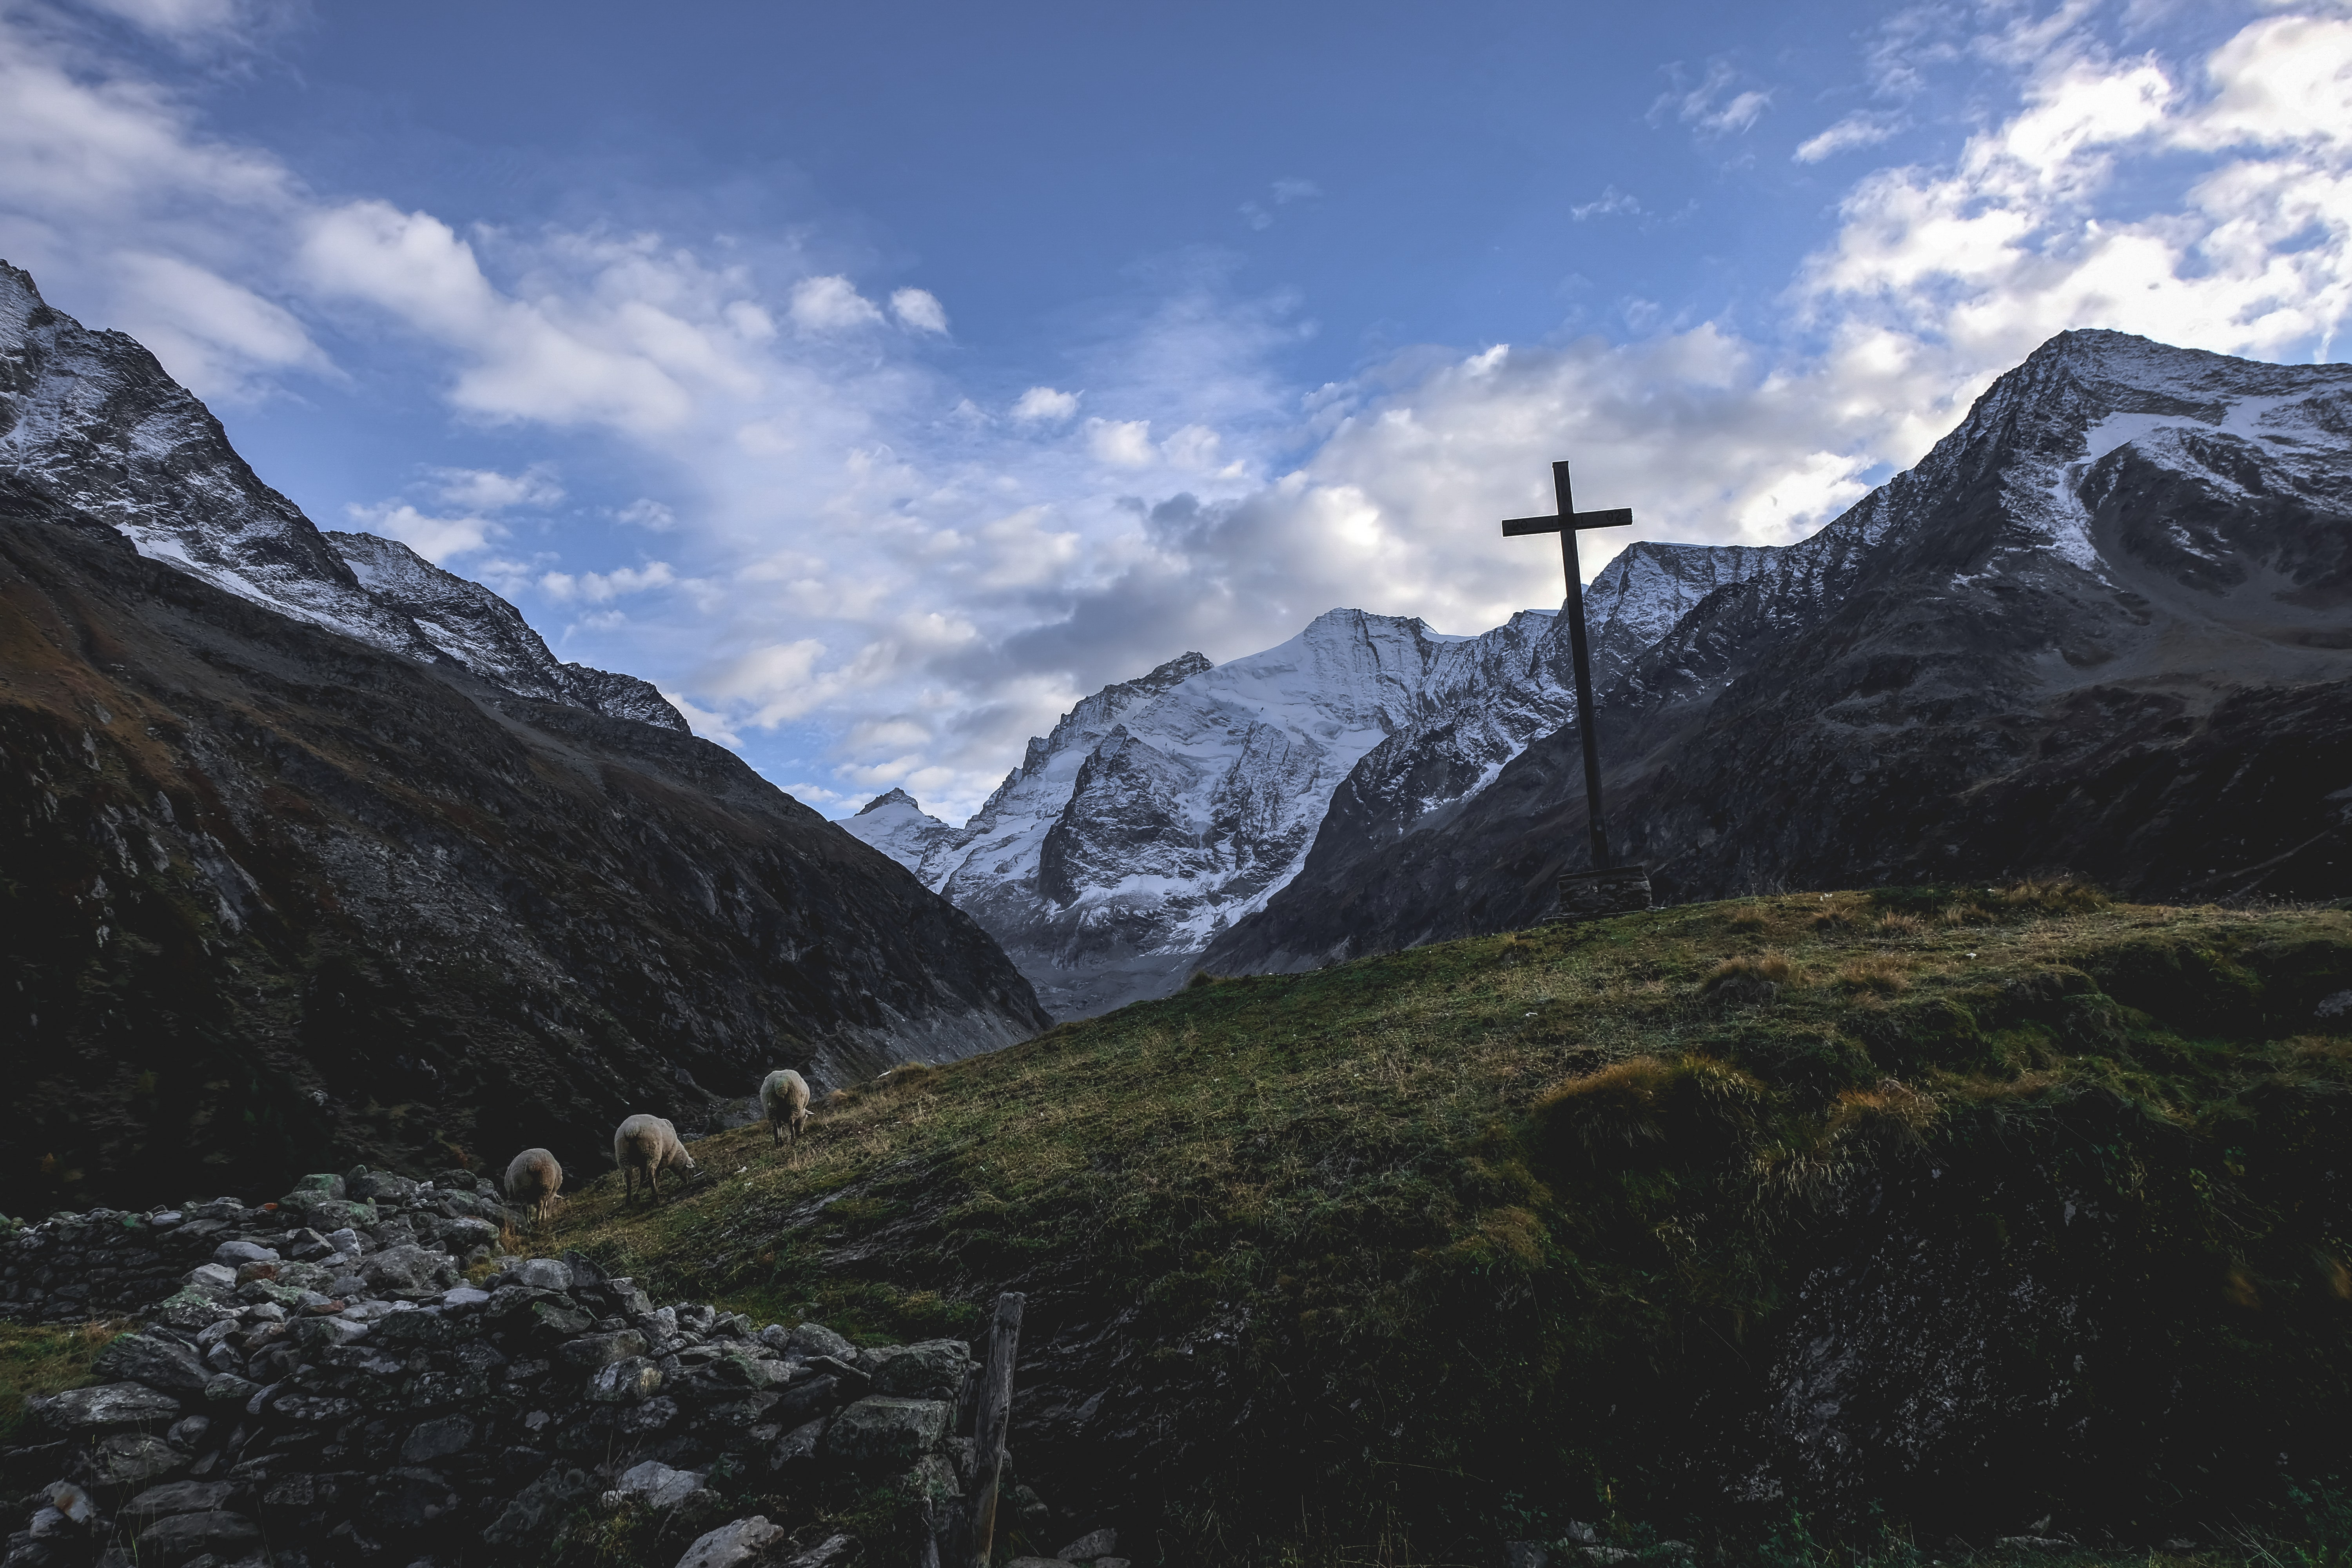 photography of mountain valley with sheeps and cross